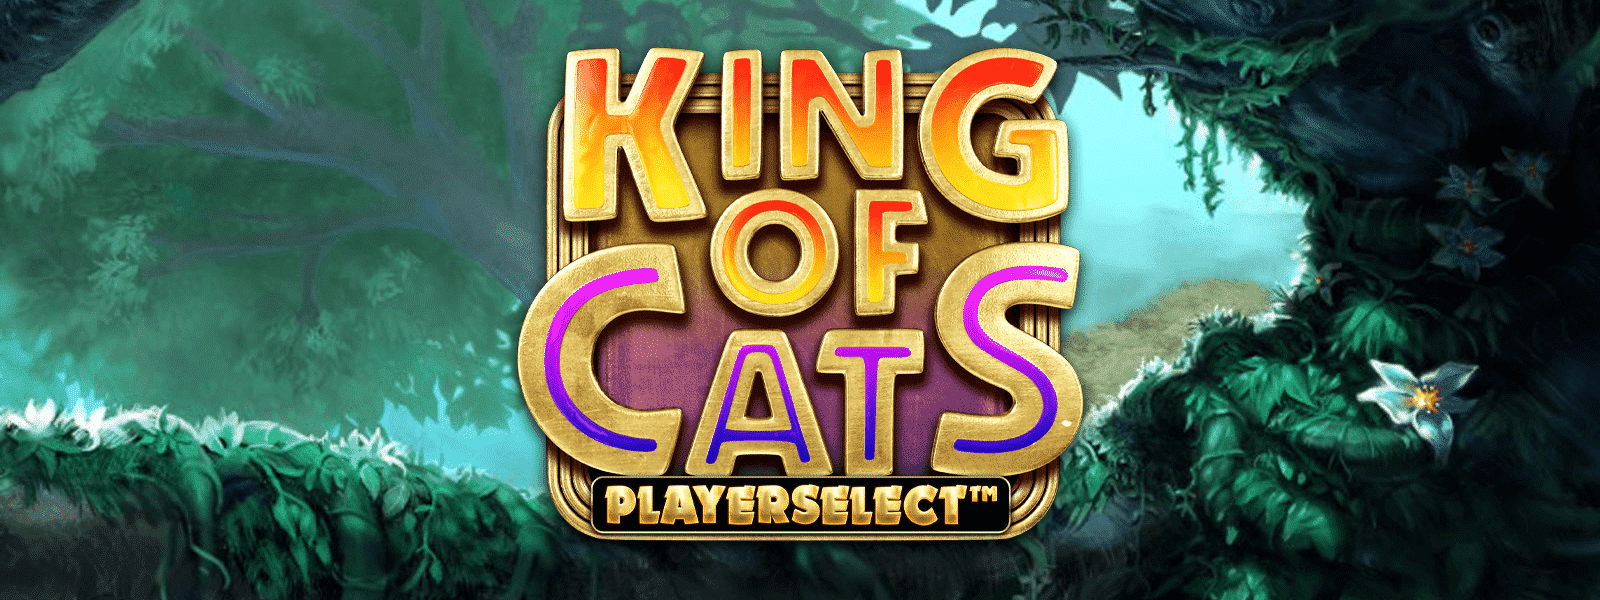 King of Cats Megaways Playerselect™ Live Launch